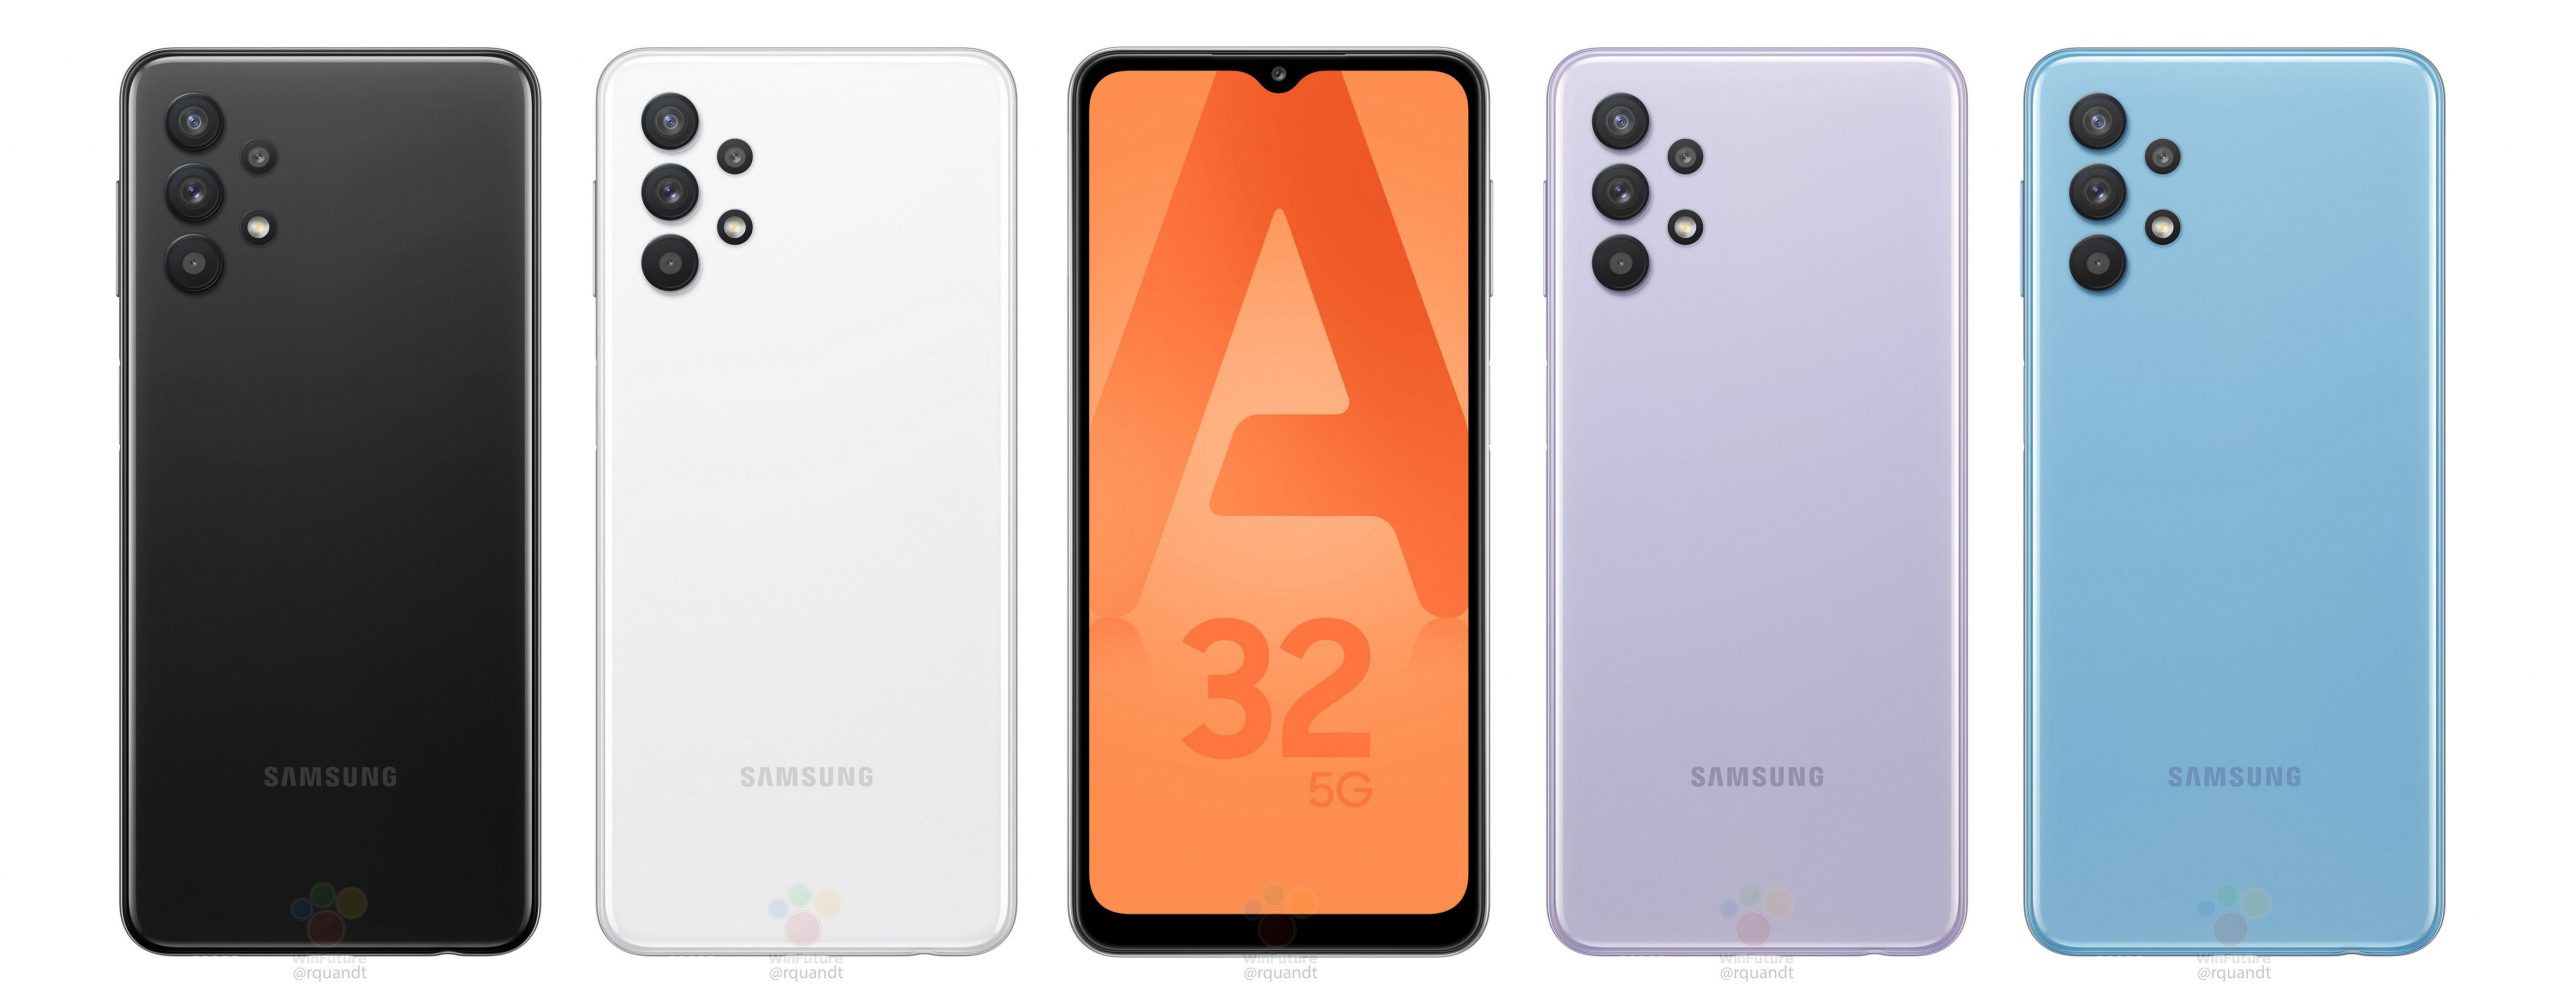 Samsung-Galaxy-A32-5G-front-and-rear